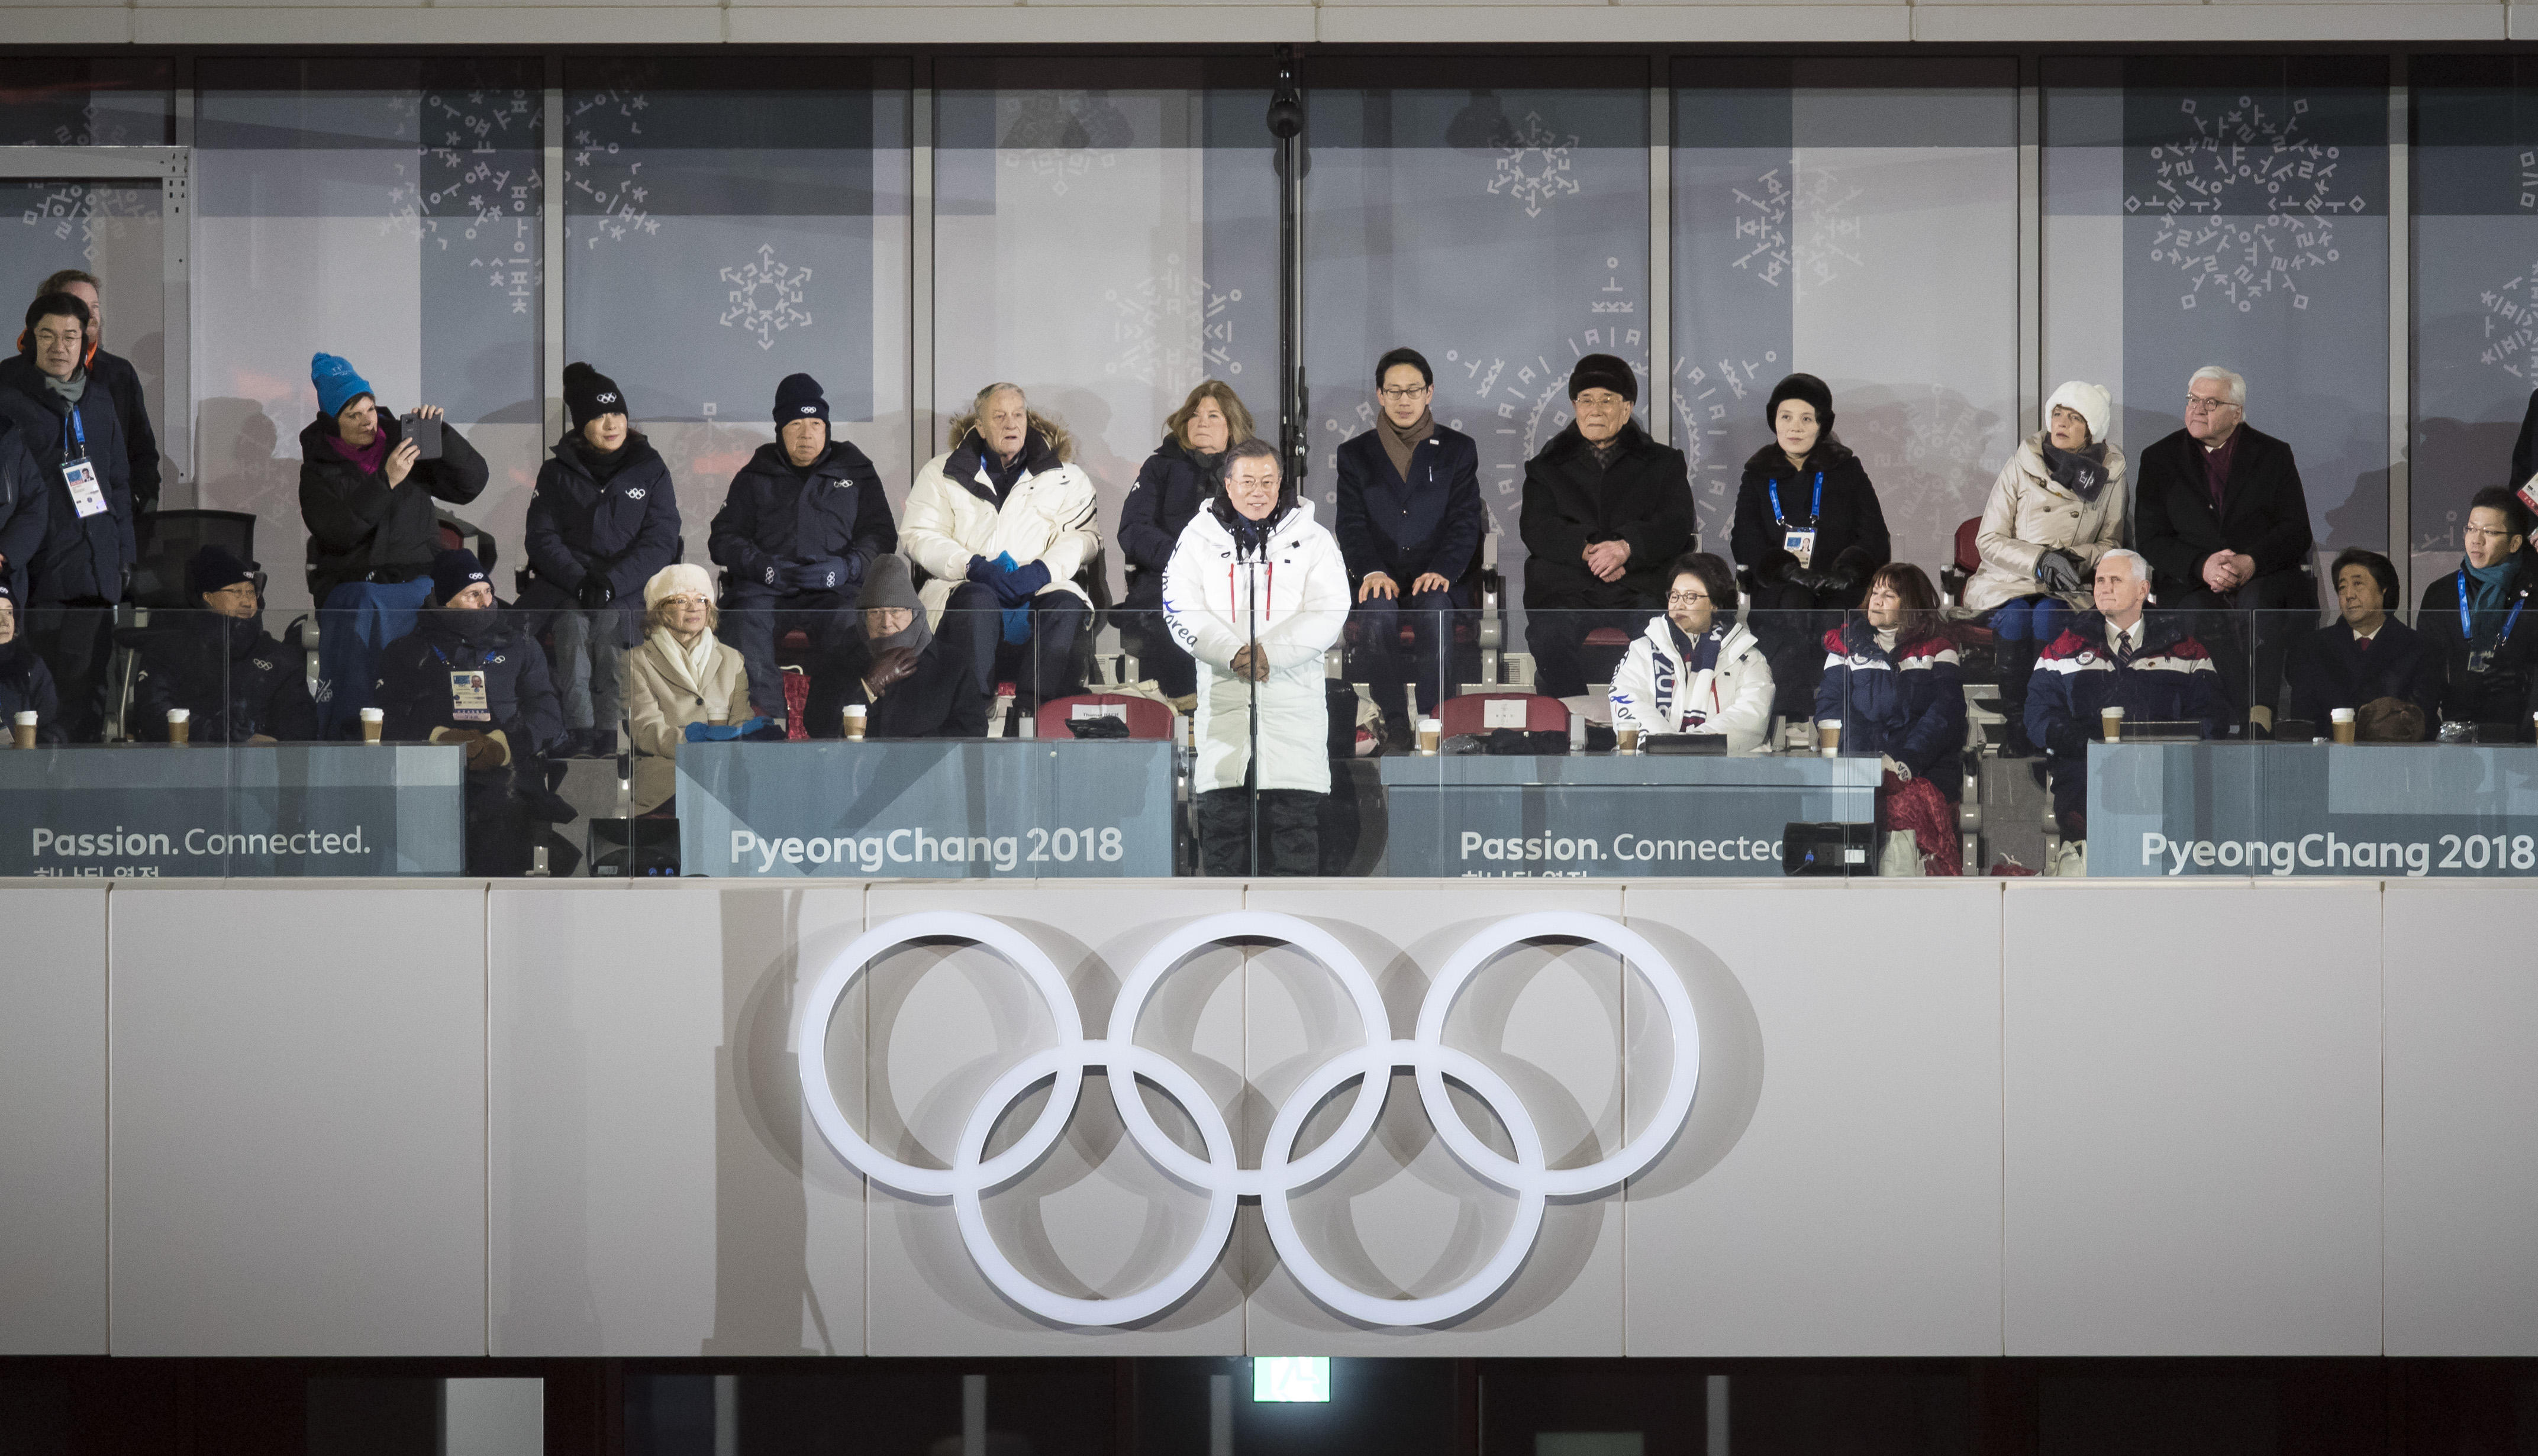 2018 Winter Olympic Games Opening Ceremony PyeongChang Feb 9th